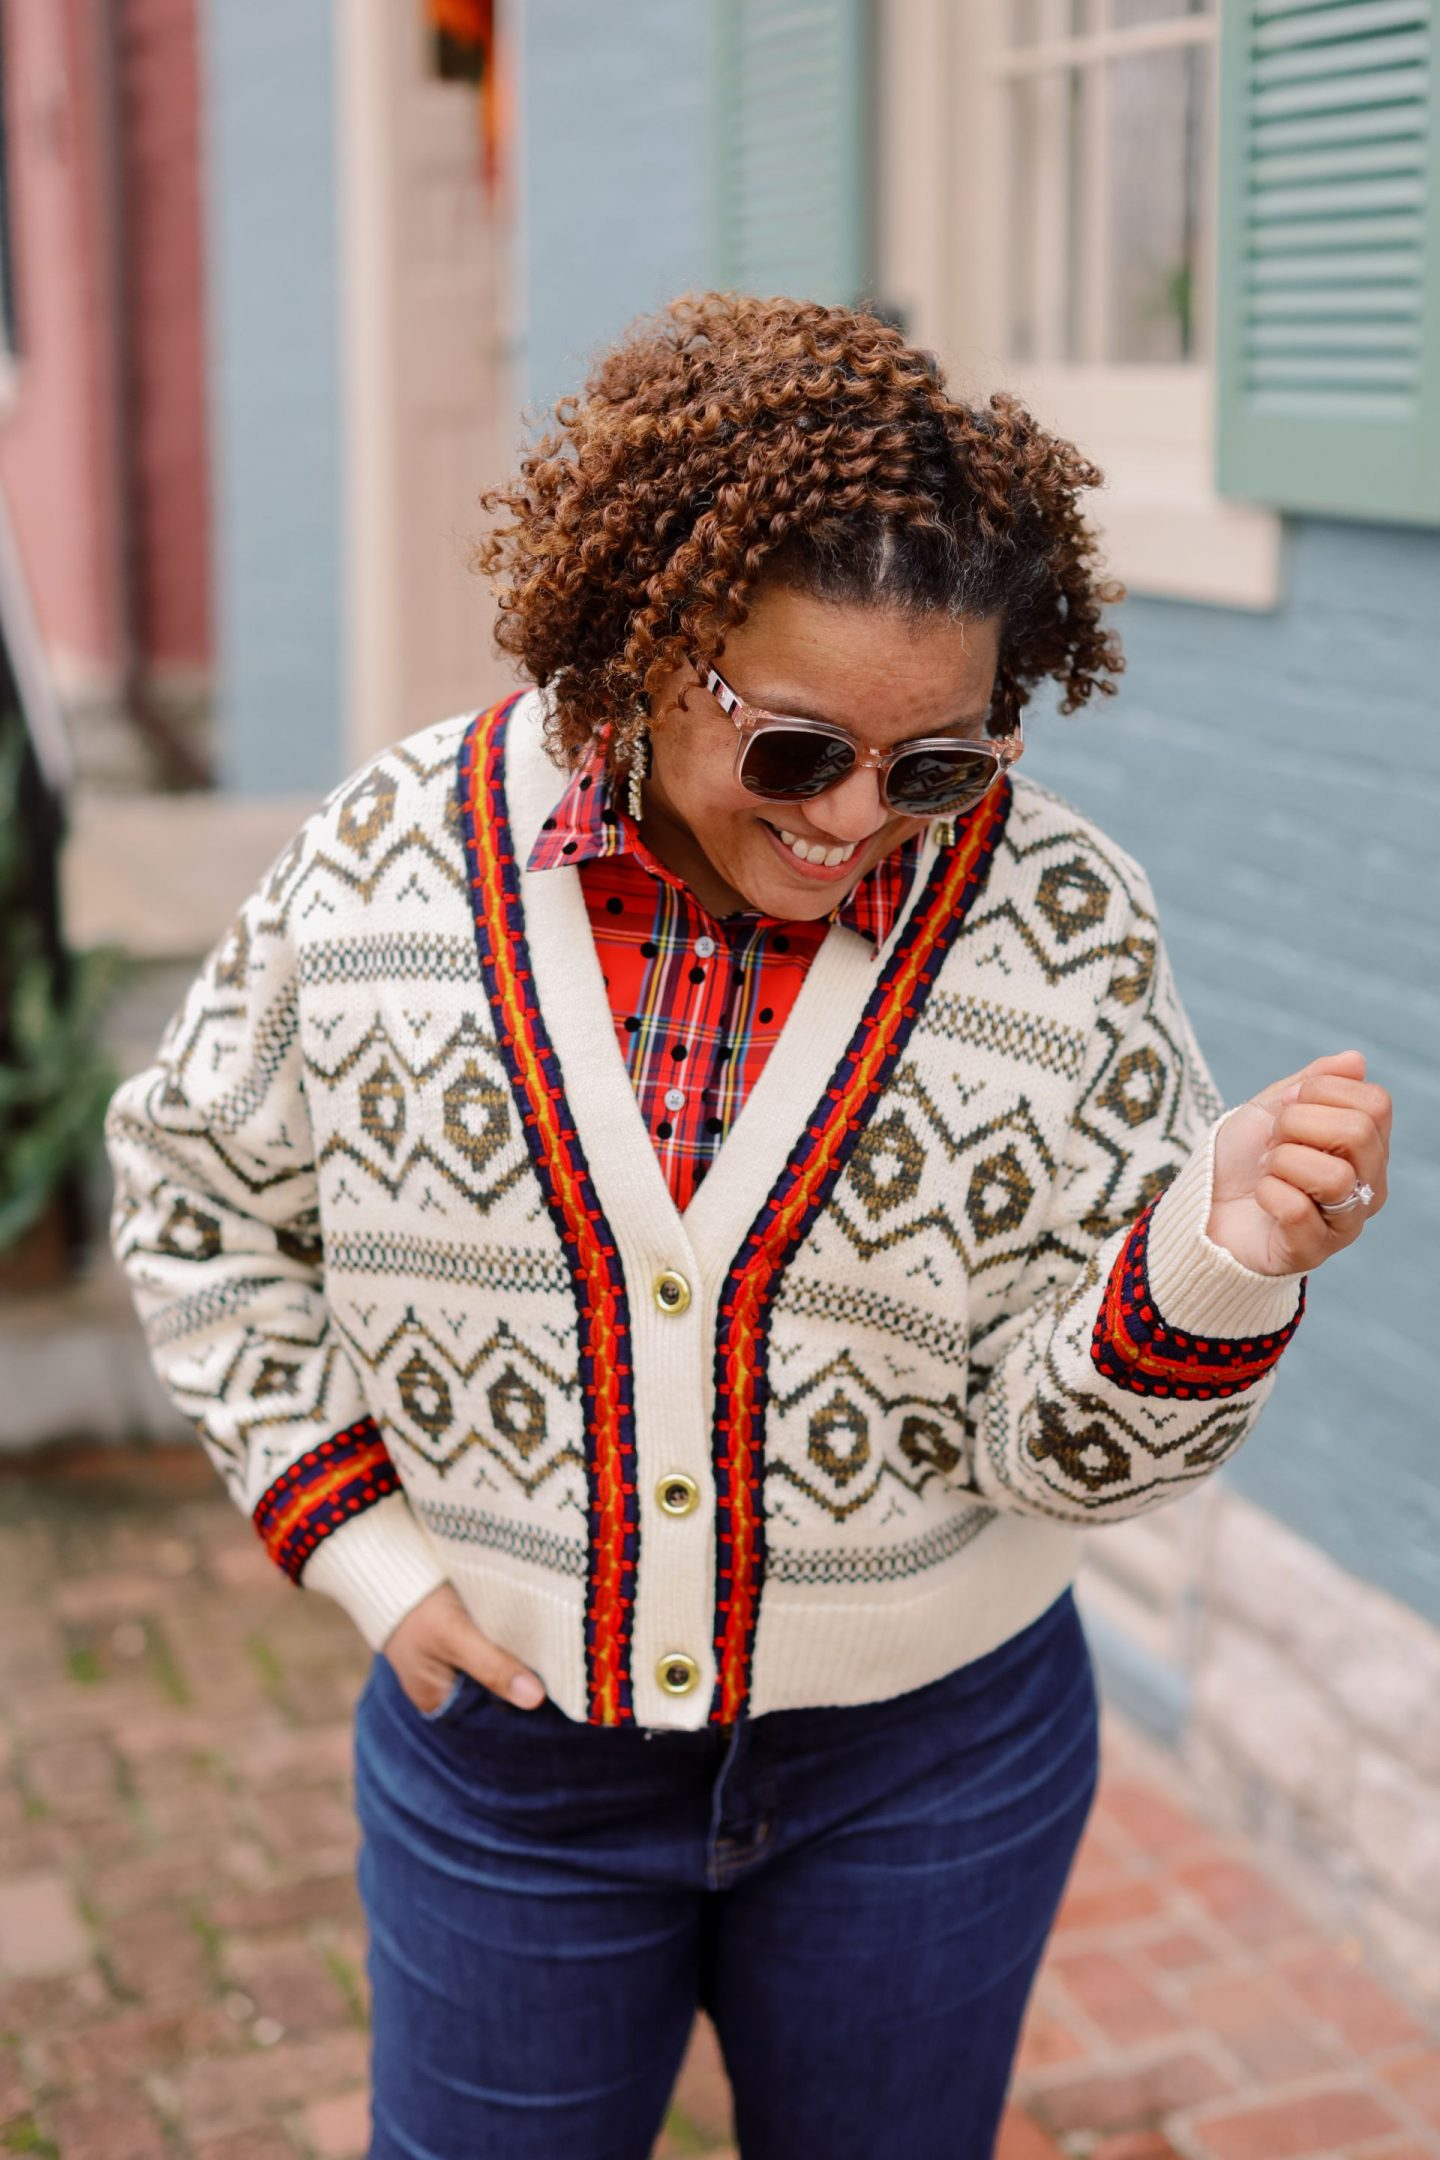 Holiday Outfits by popular Kentucky fashion blog, Really Rynetta: image of a woman standing outside and wearing a red plaid button up, alpine sweater and jeans.